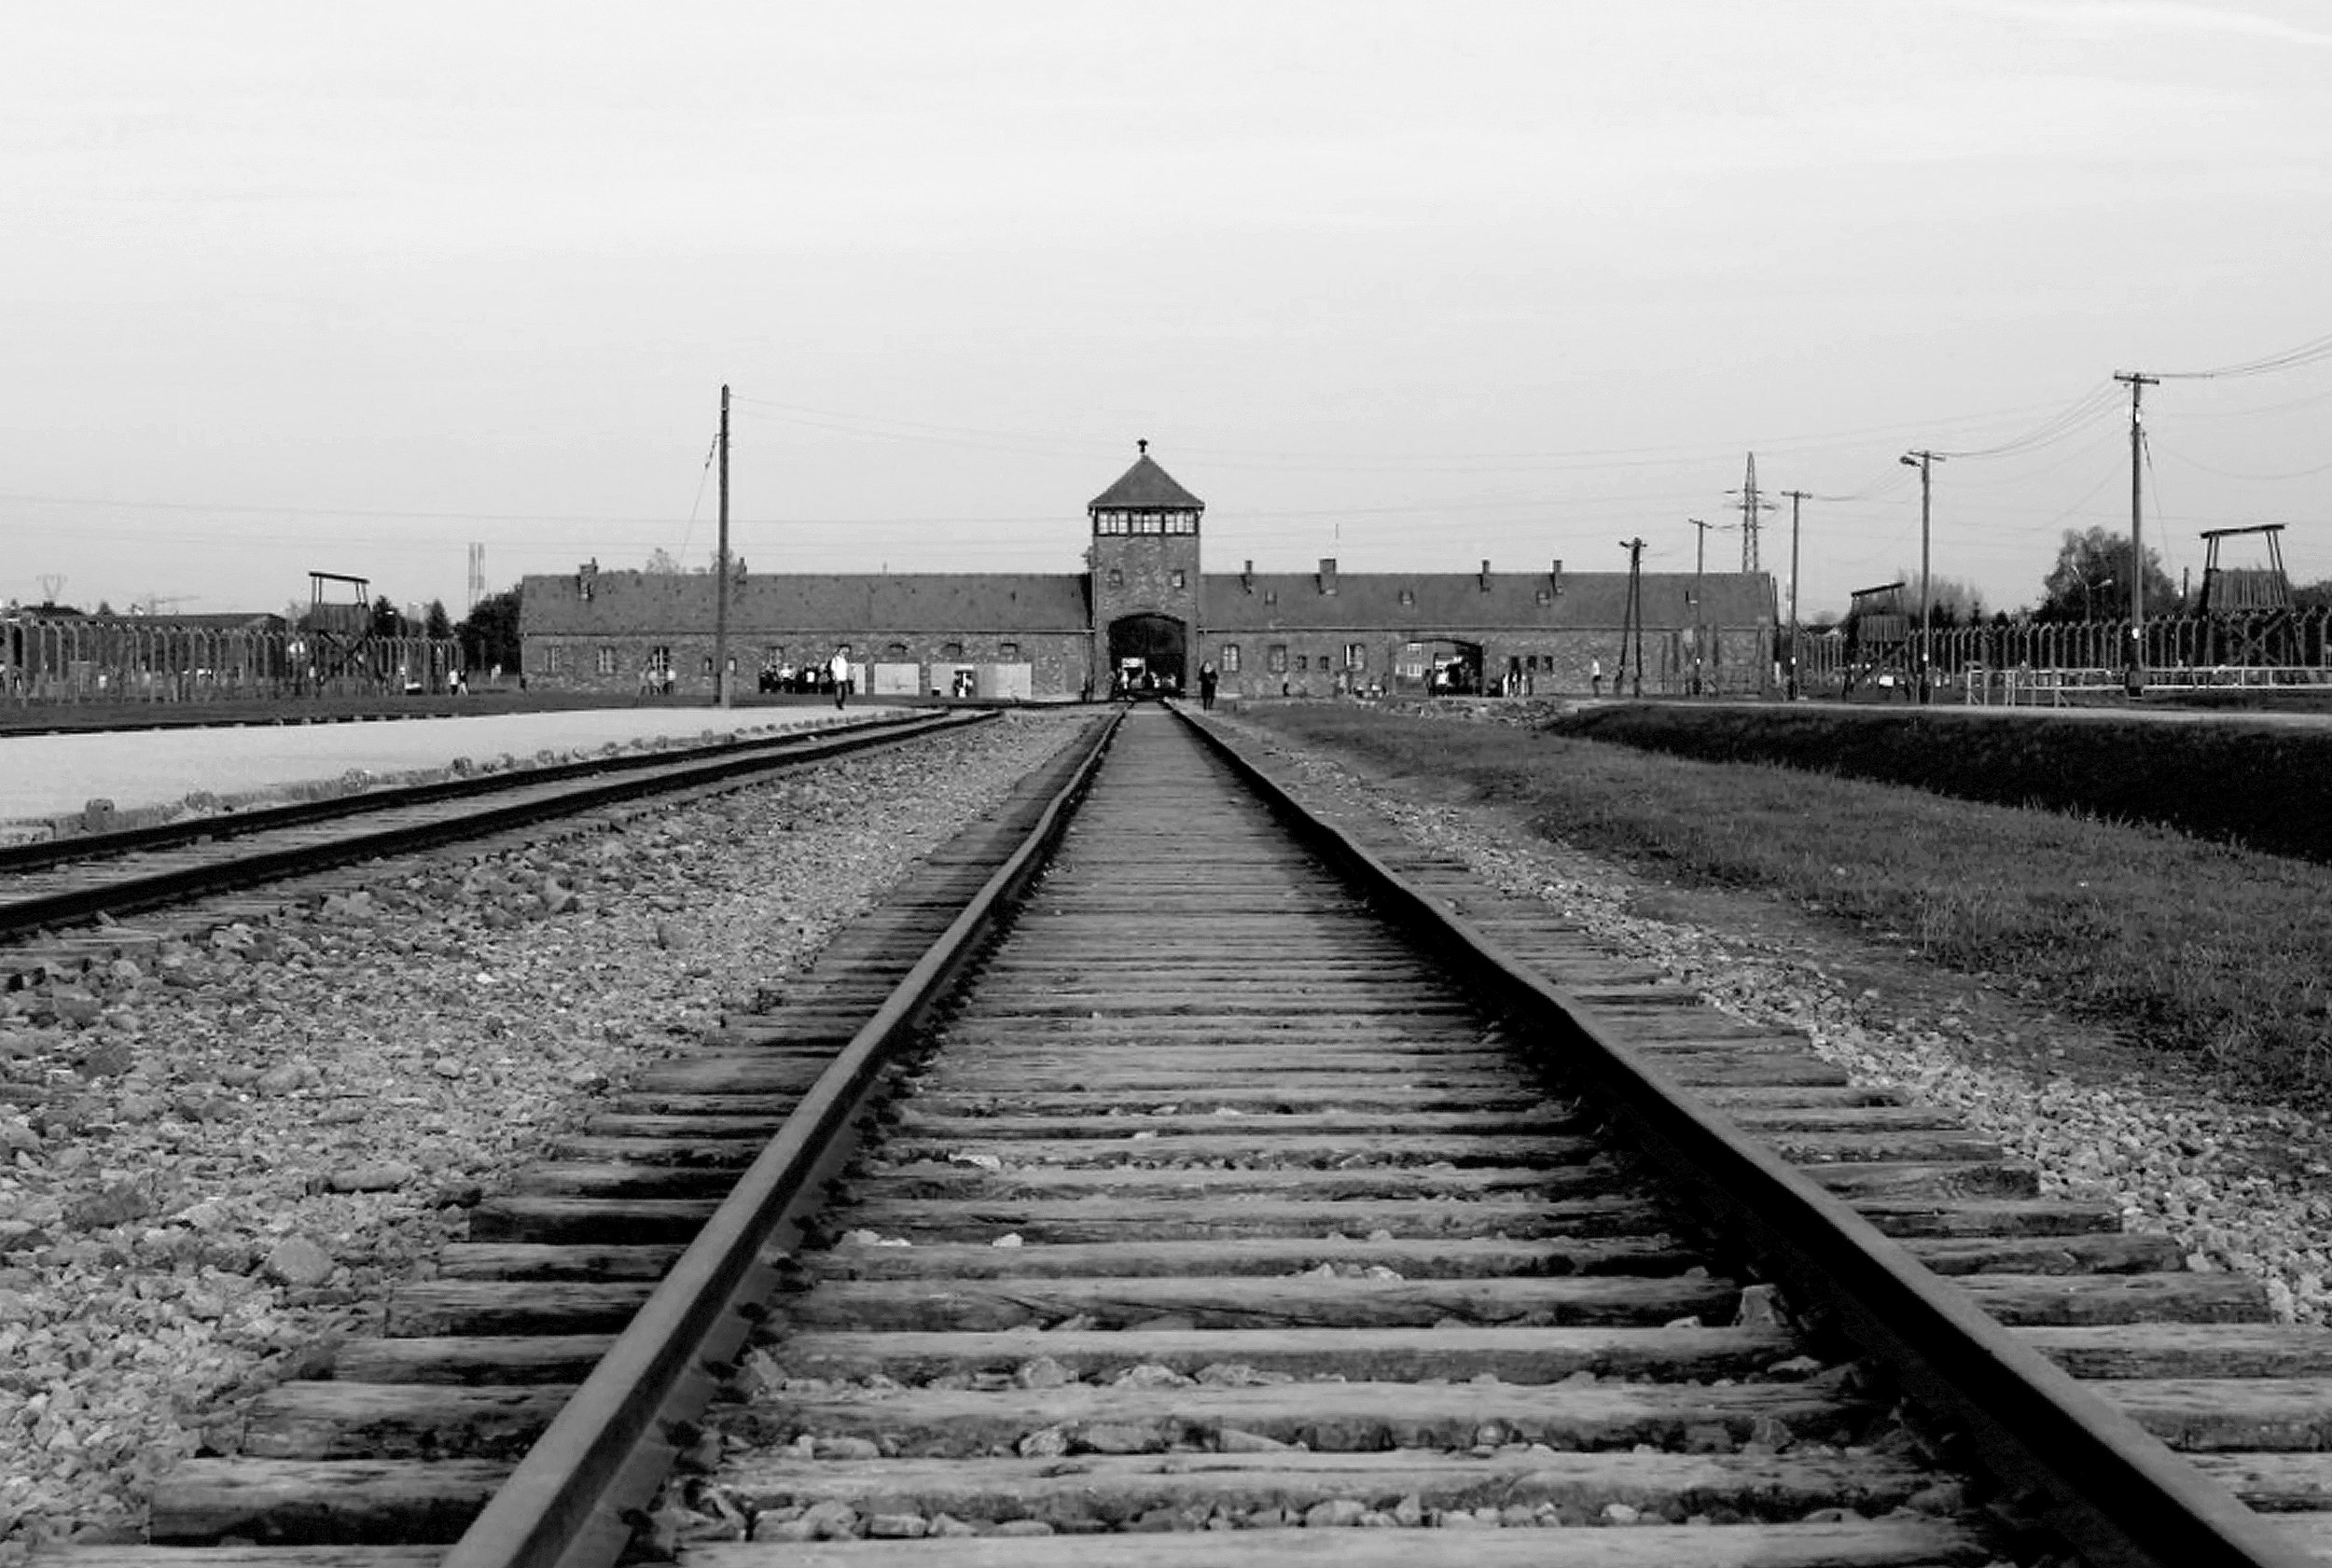 Auschwitz II – Birkenau. The main SS guard tower also known as gate of death. The railroad spur and ramp ran from the main gate towards the gas chambers and crematoria.